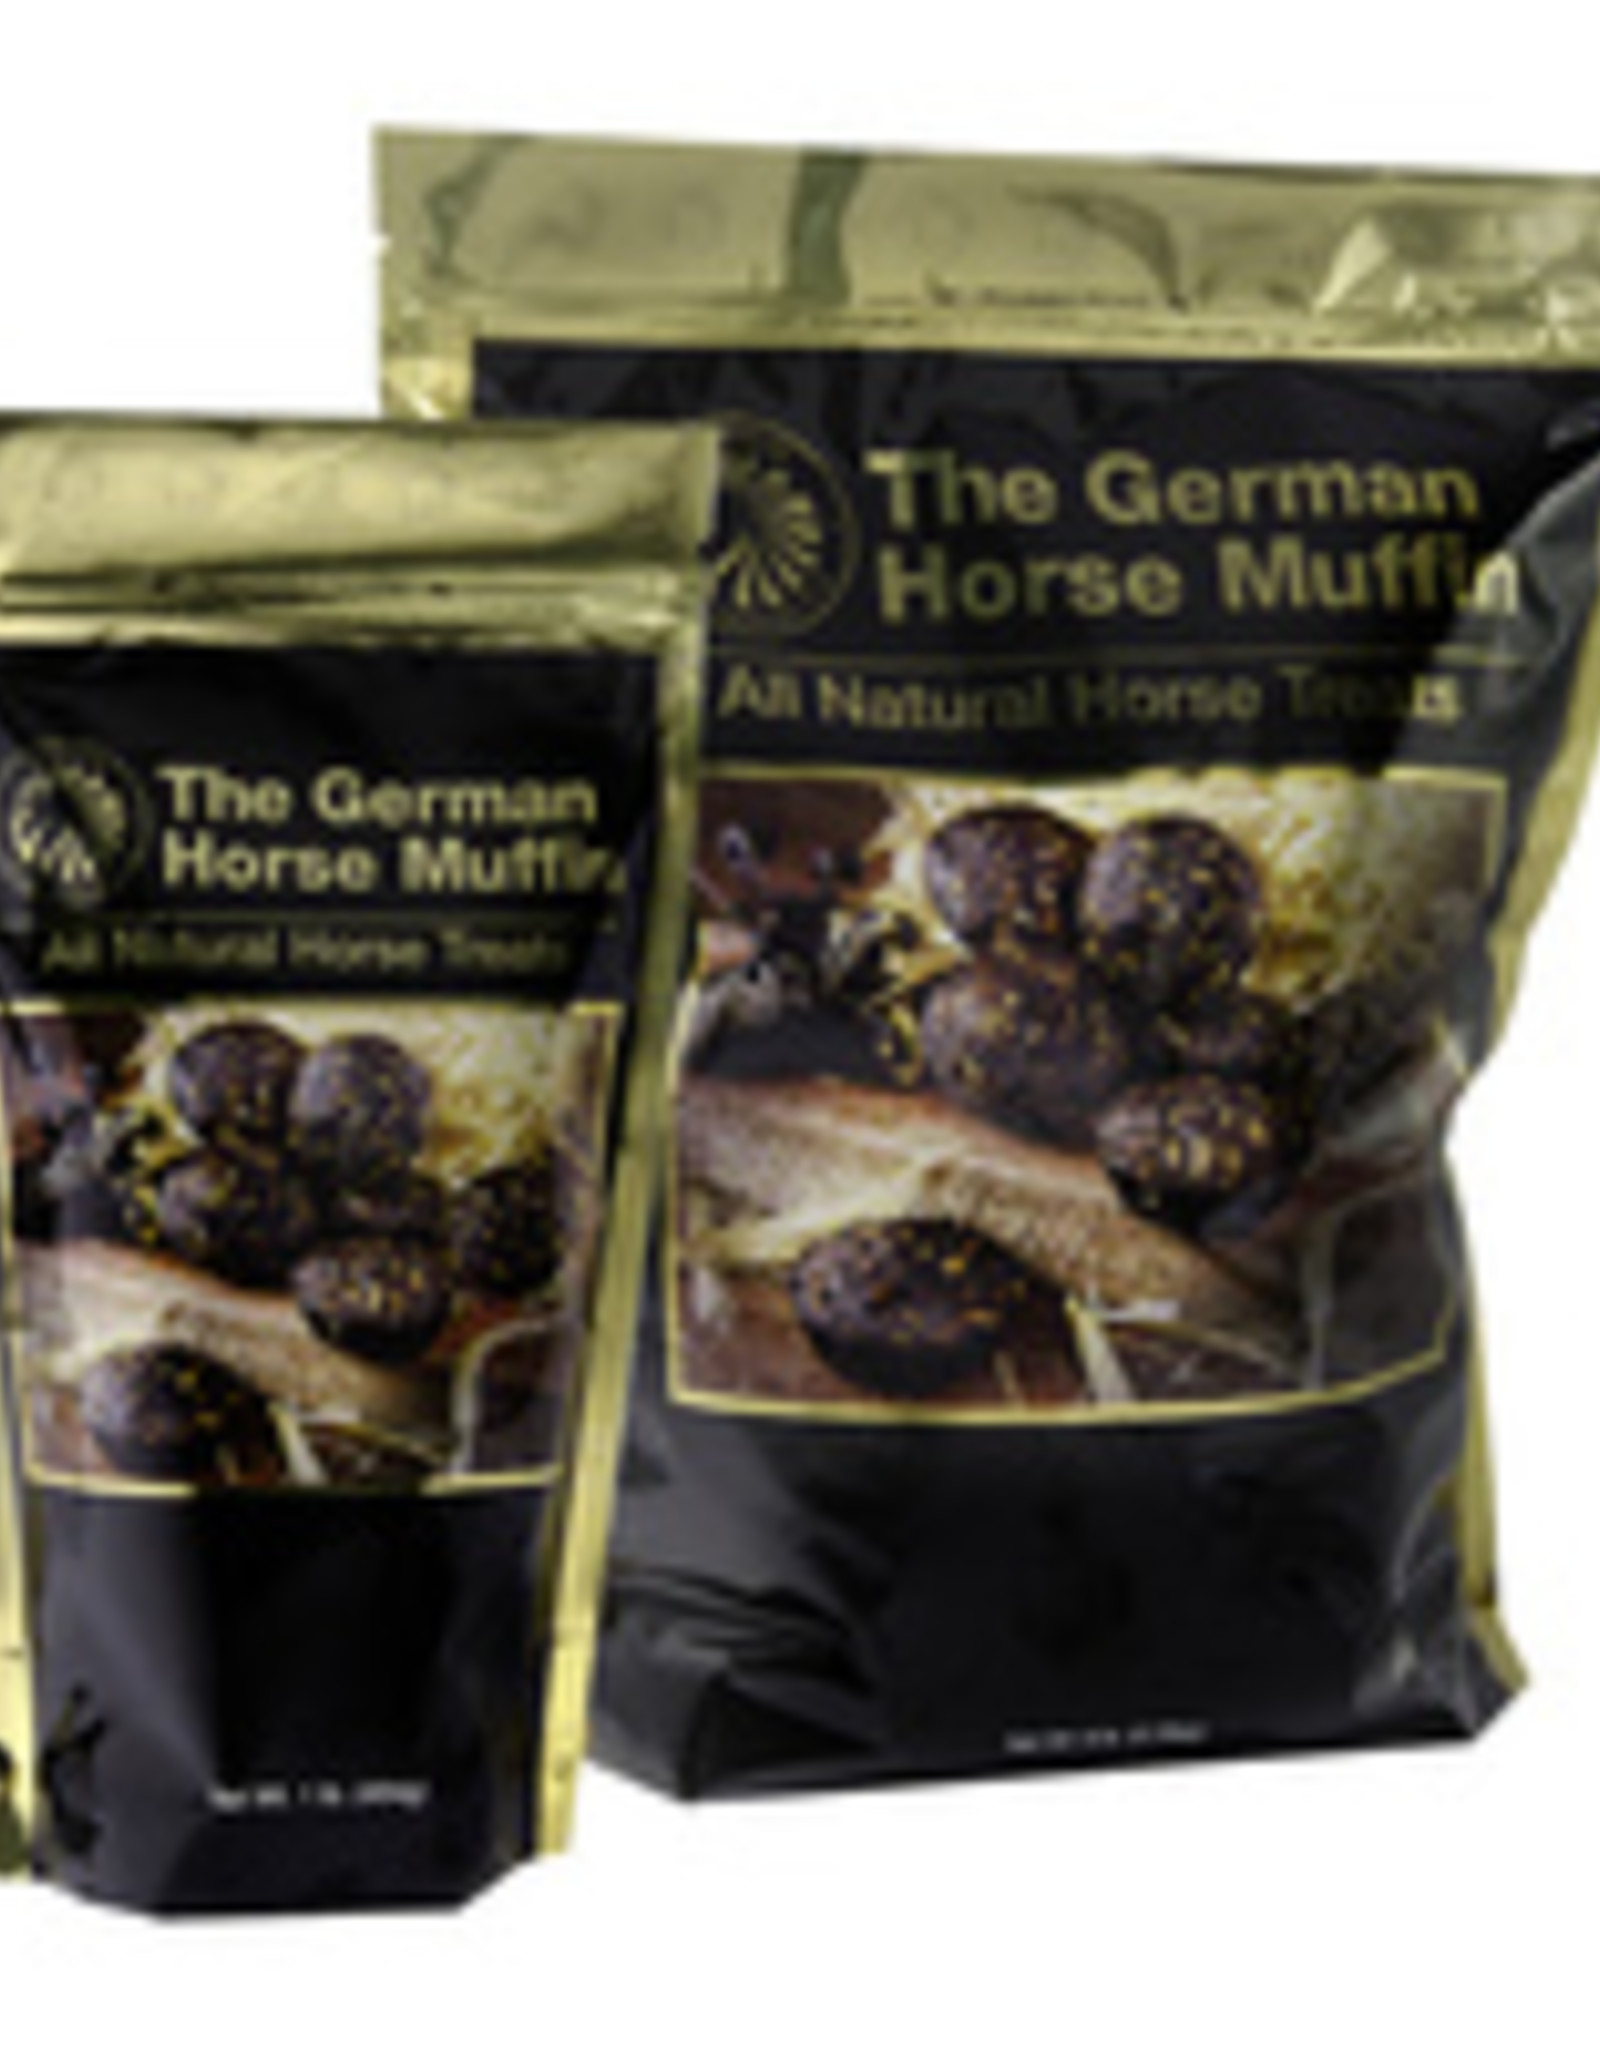 RJ Matthews German horse muffin 6 lb bag